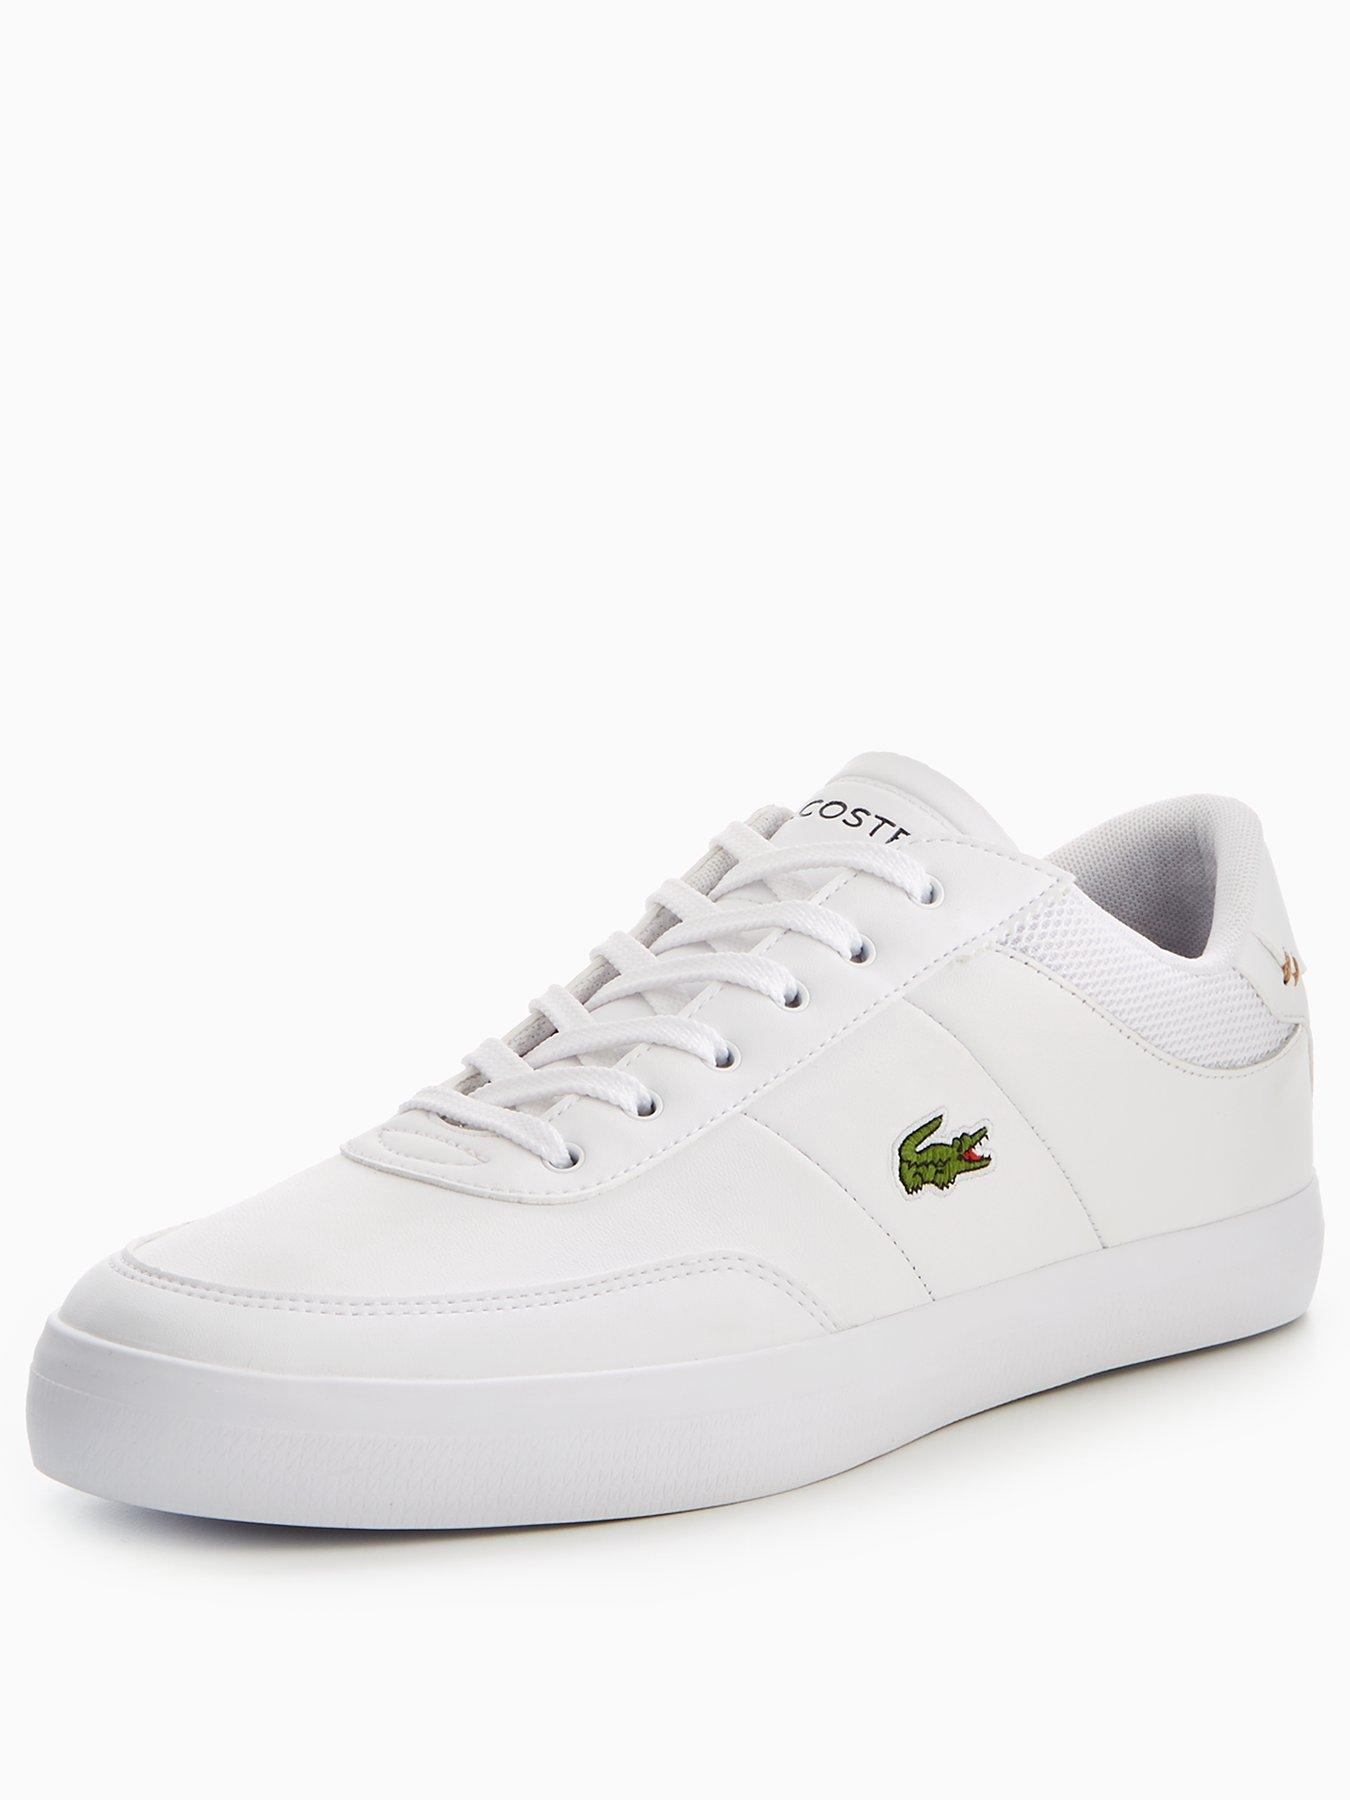 lacoste shoes youtube kelly s father s day 2018 uk snooker